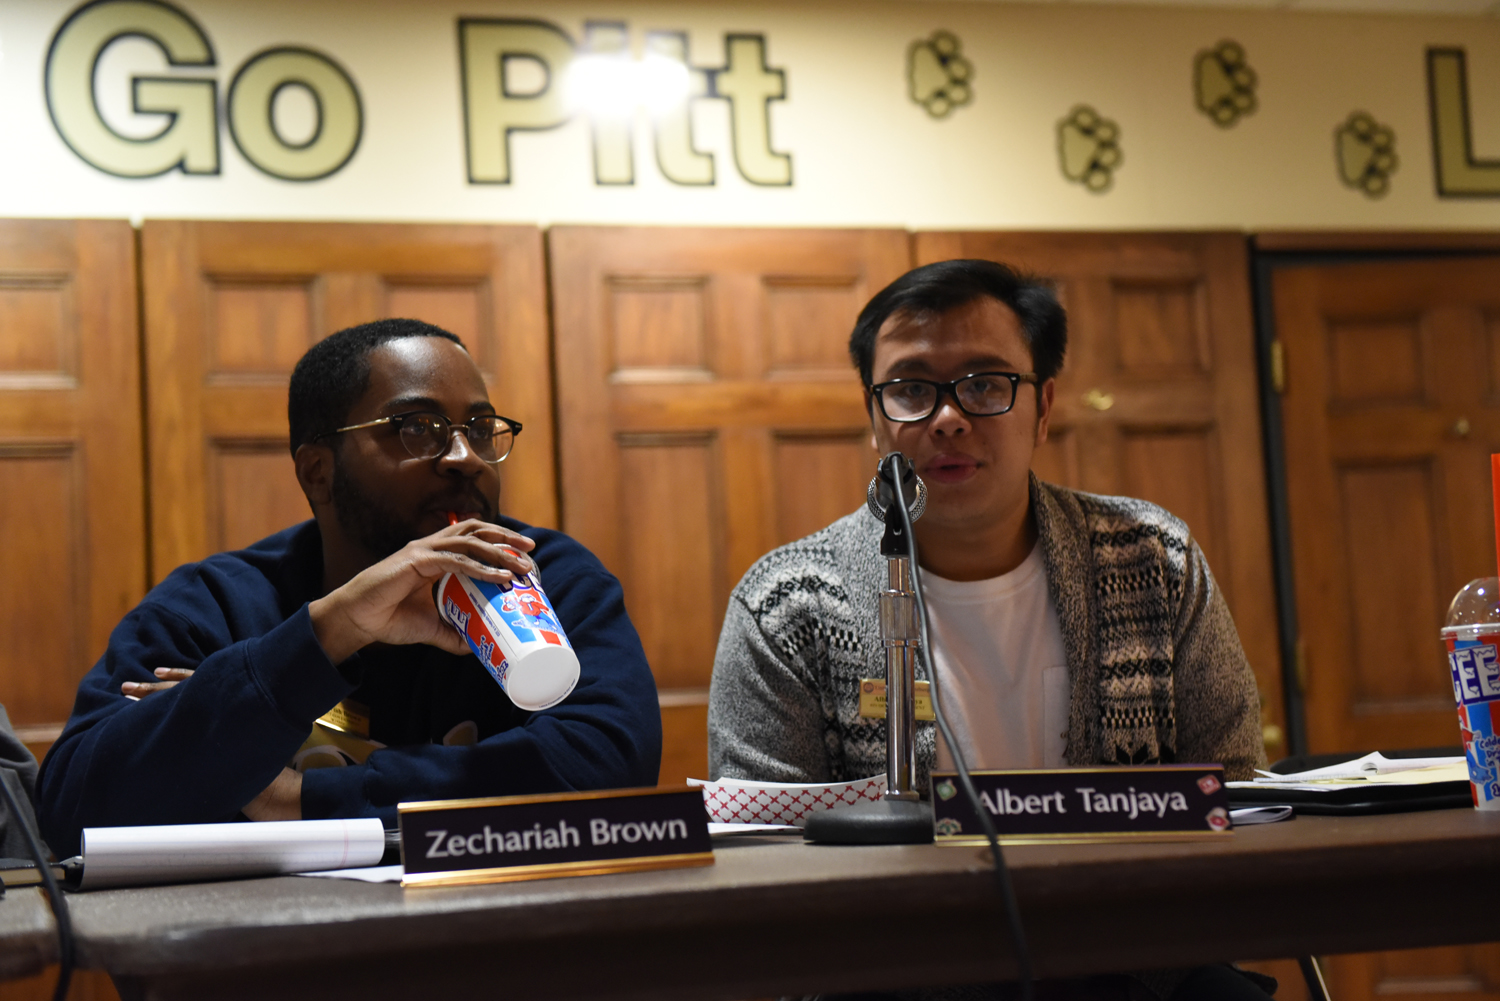 Albert Tanjaya and Zechariah Brown are running opposing presidential campaigns in SGB's 2019 election season. Both candidates launched social media campaigns on Wednesday, the official start of campaign season.